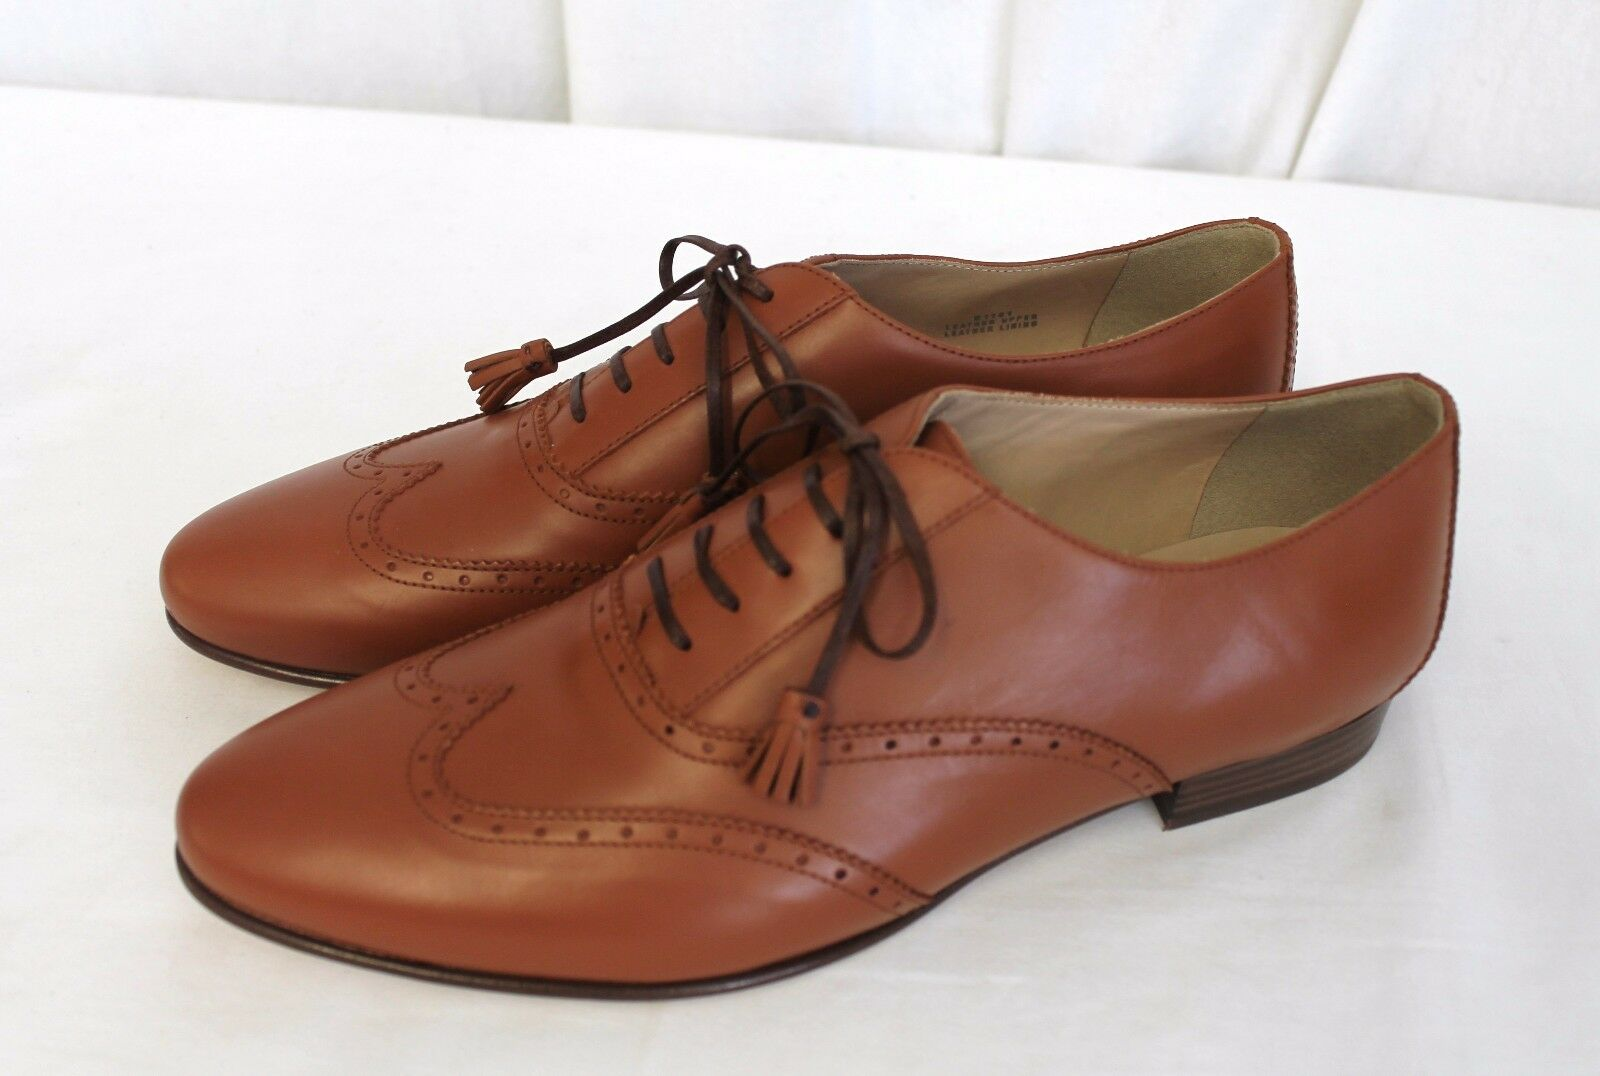 J CREW TASSEL OXFORD SHOES LOAFERS LEATHER WARM COGNAC BROWN  SIZE 10 $268 ITALY